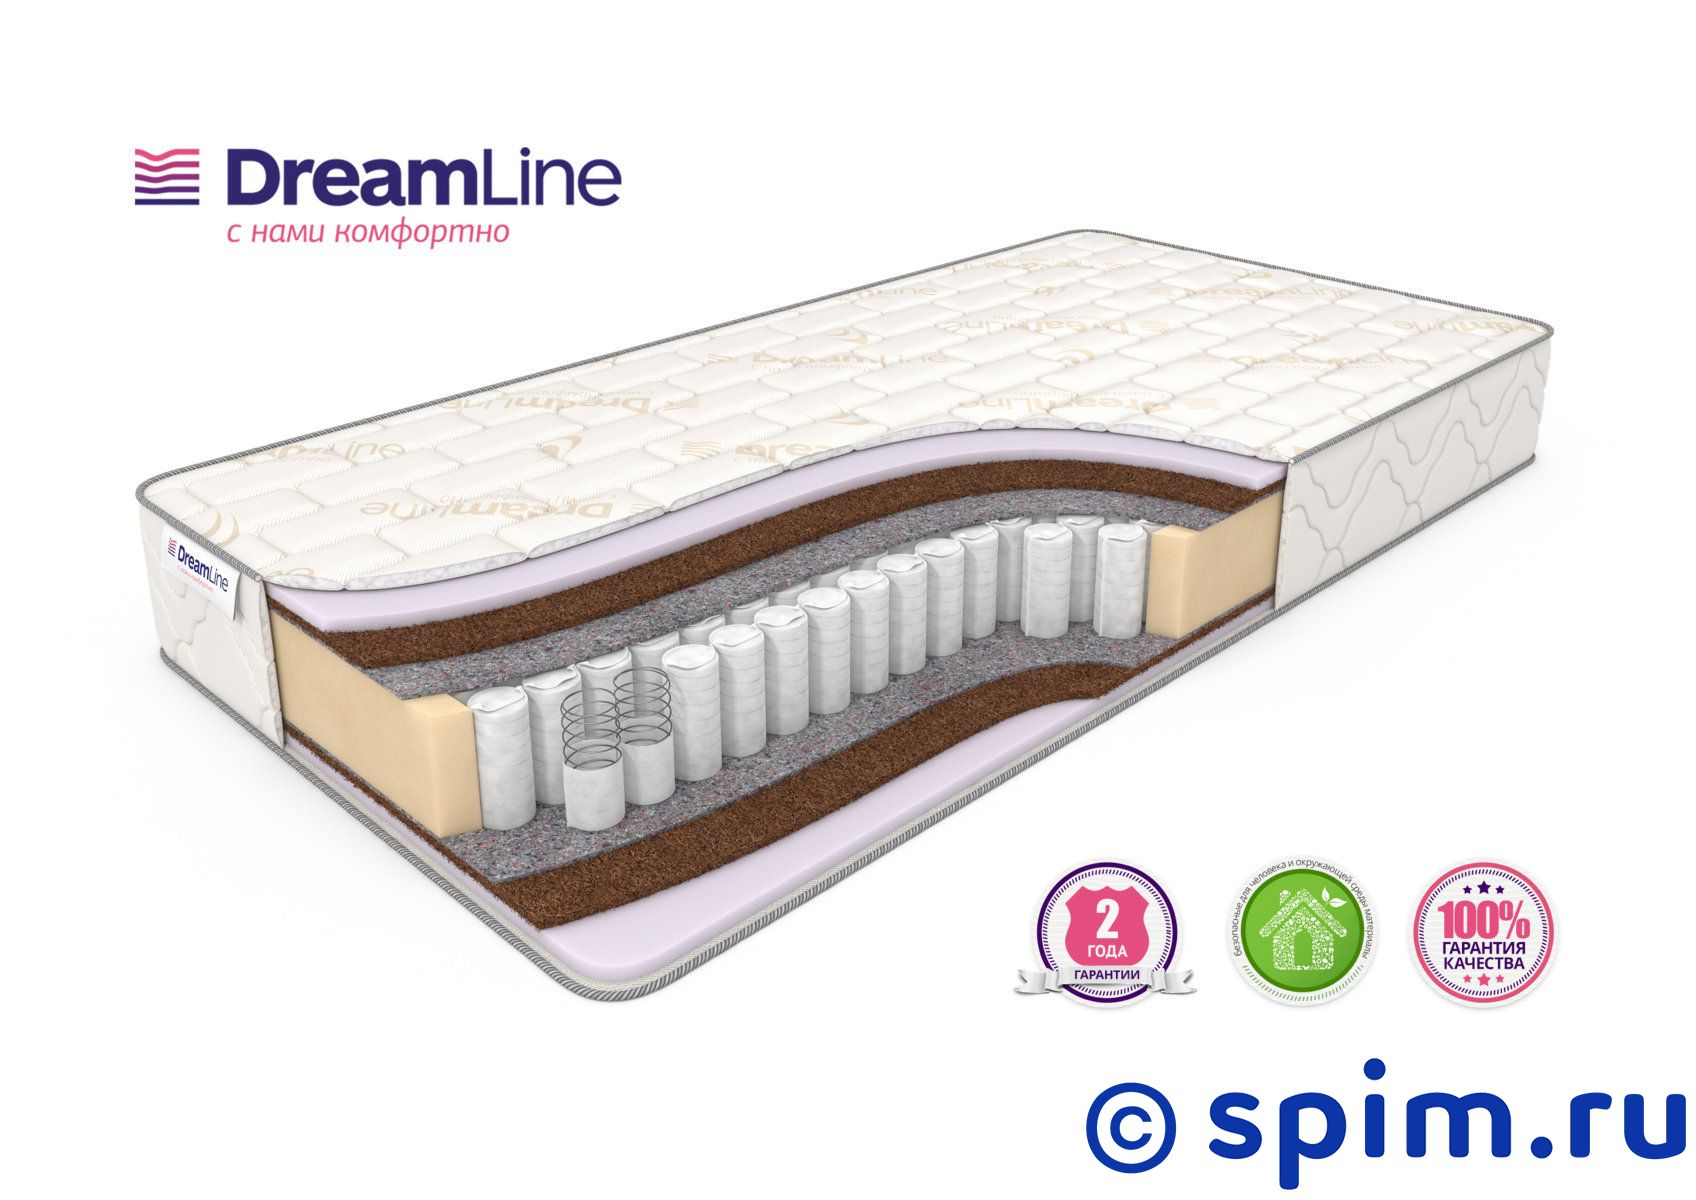 Матрас DreamLine Classic +15 Hard Tfk 150х195 см матрас dreamline sleepdream medium tfk 140х200 см